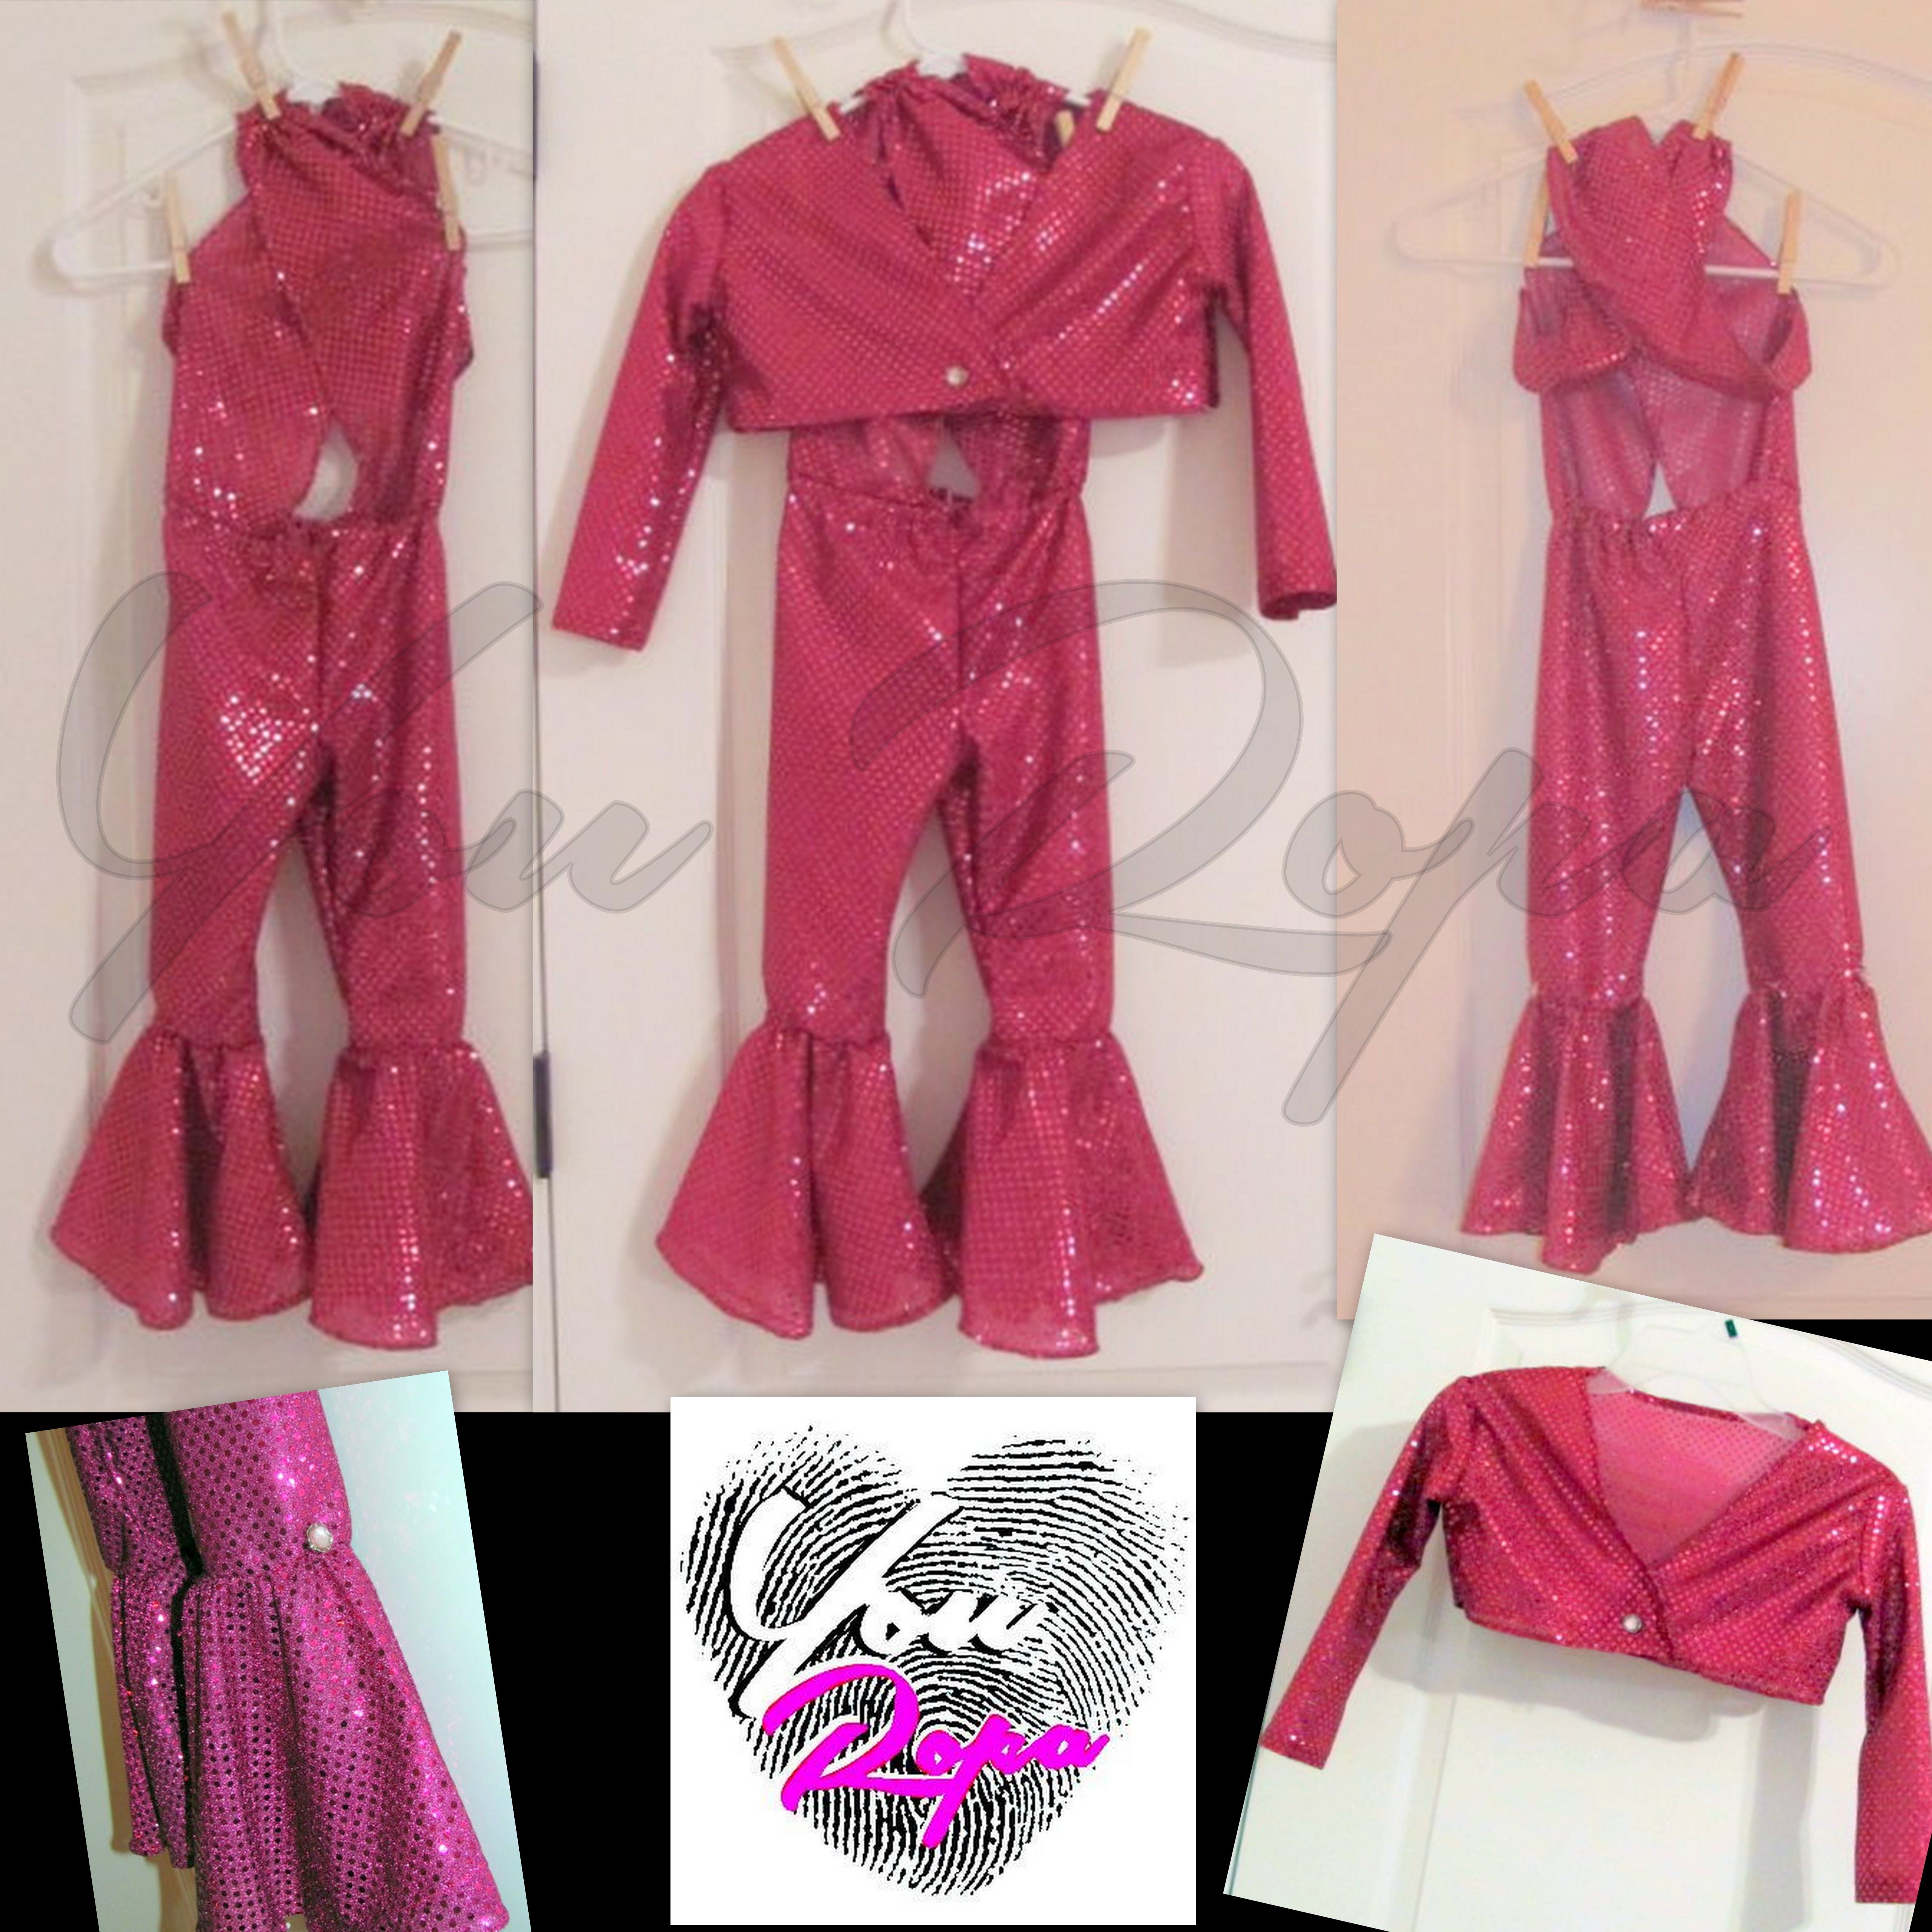 Here you have it! The custom ordered Child's Selena Costume is now ...